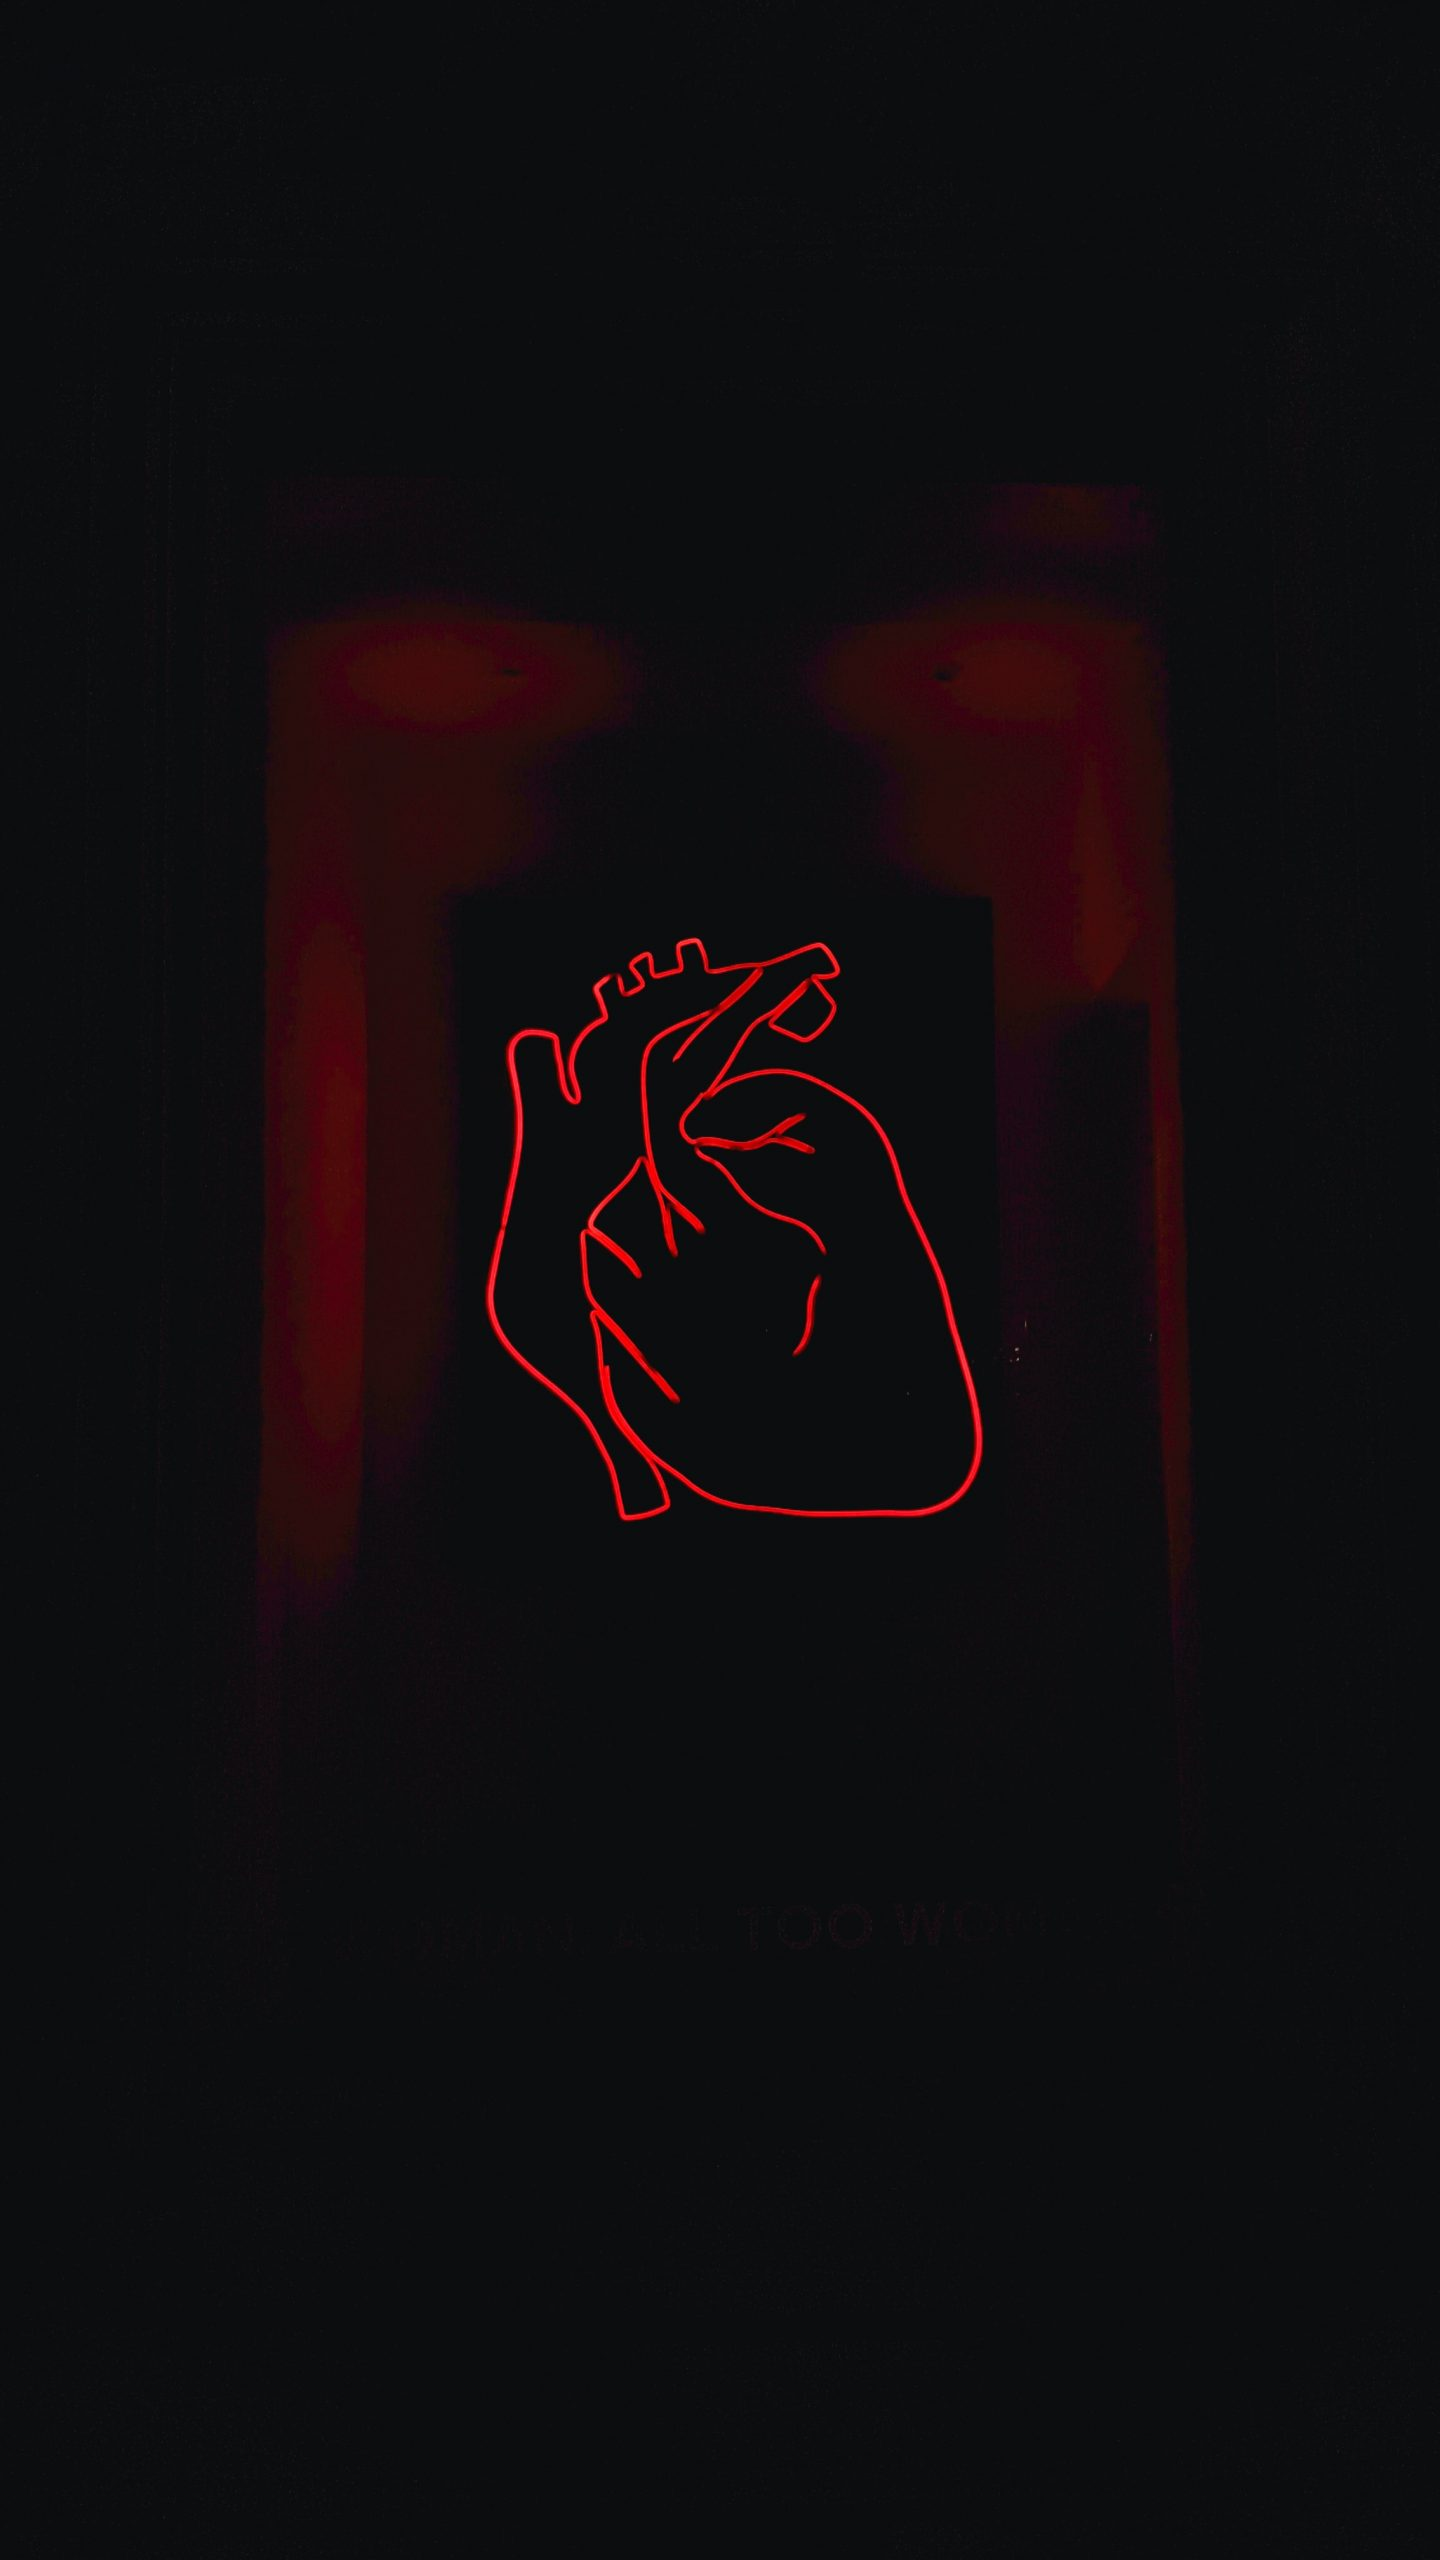 A red neon heart.